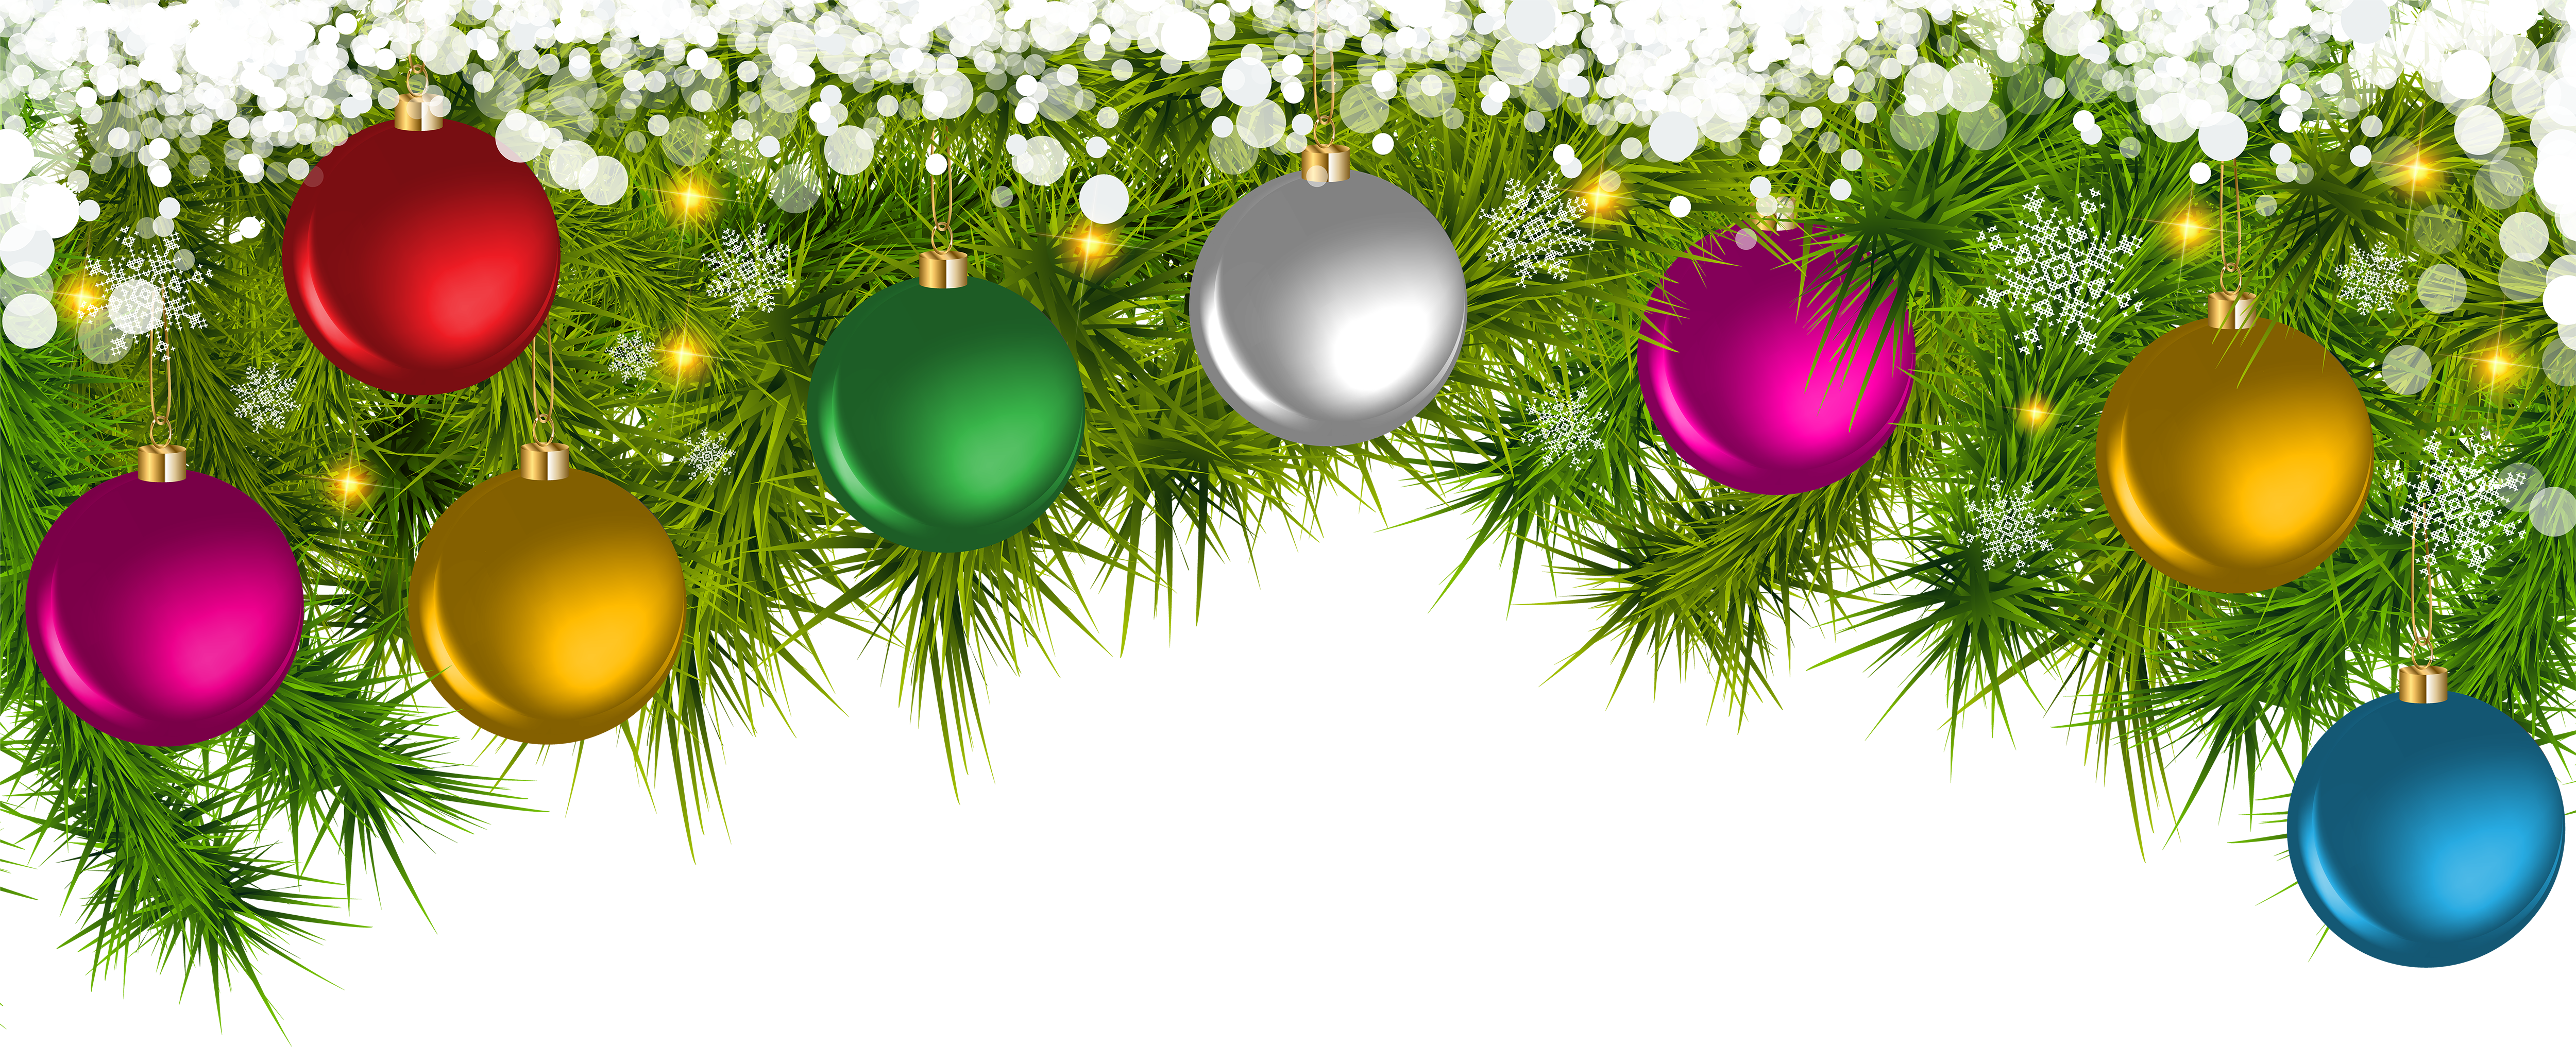 Christmas branches clipart graphic free stock Christmas Pine Branches and Ornaments PNG Clip Art | Gallery ... graphic free stock